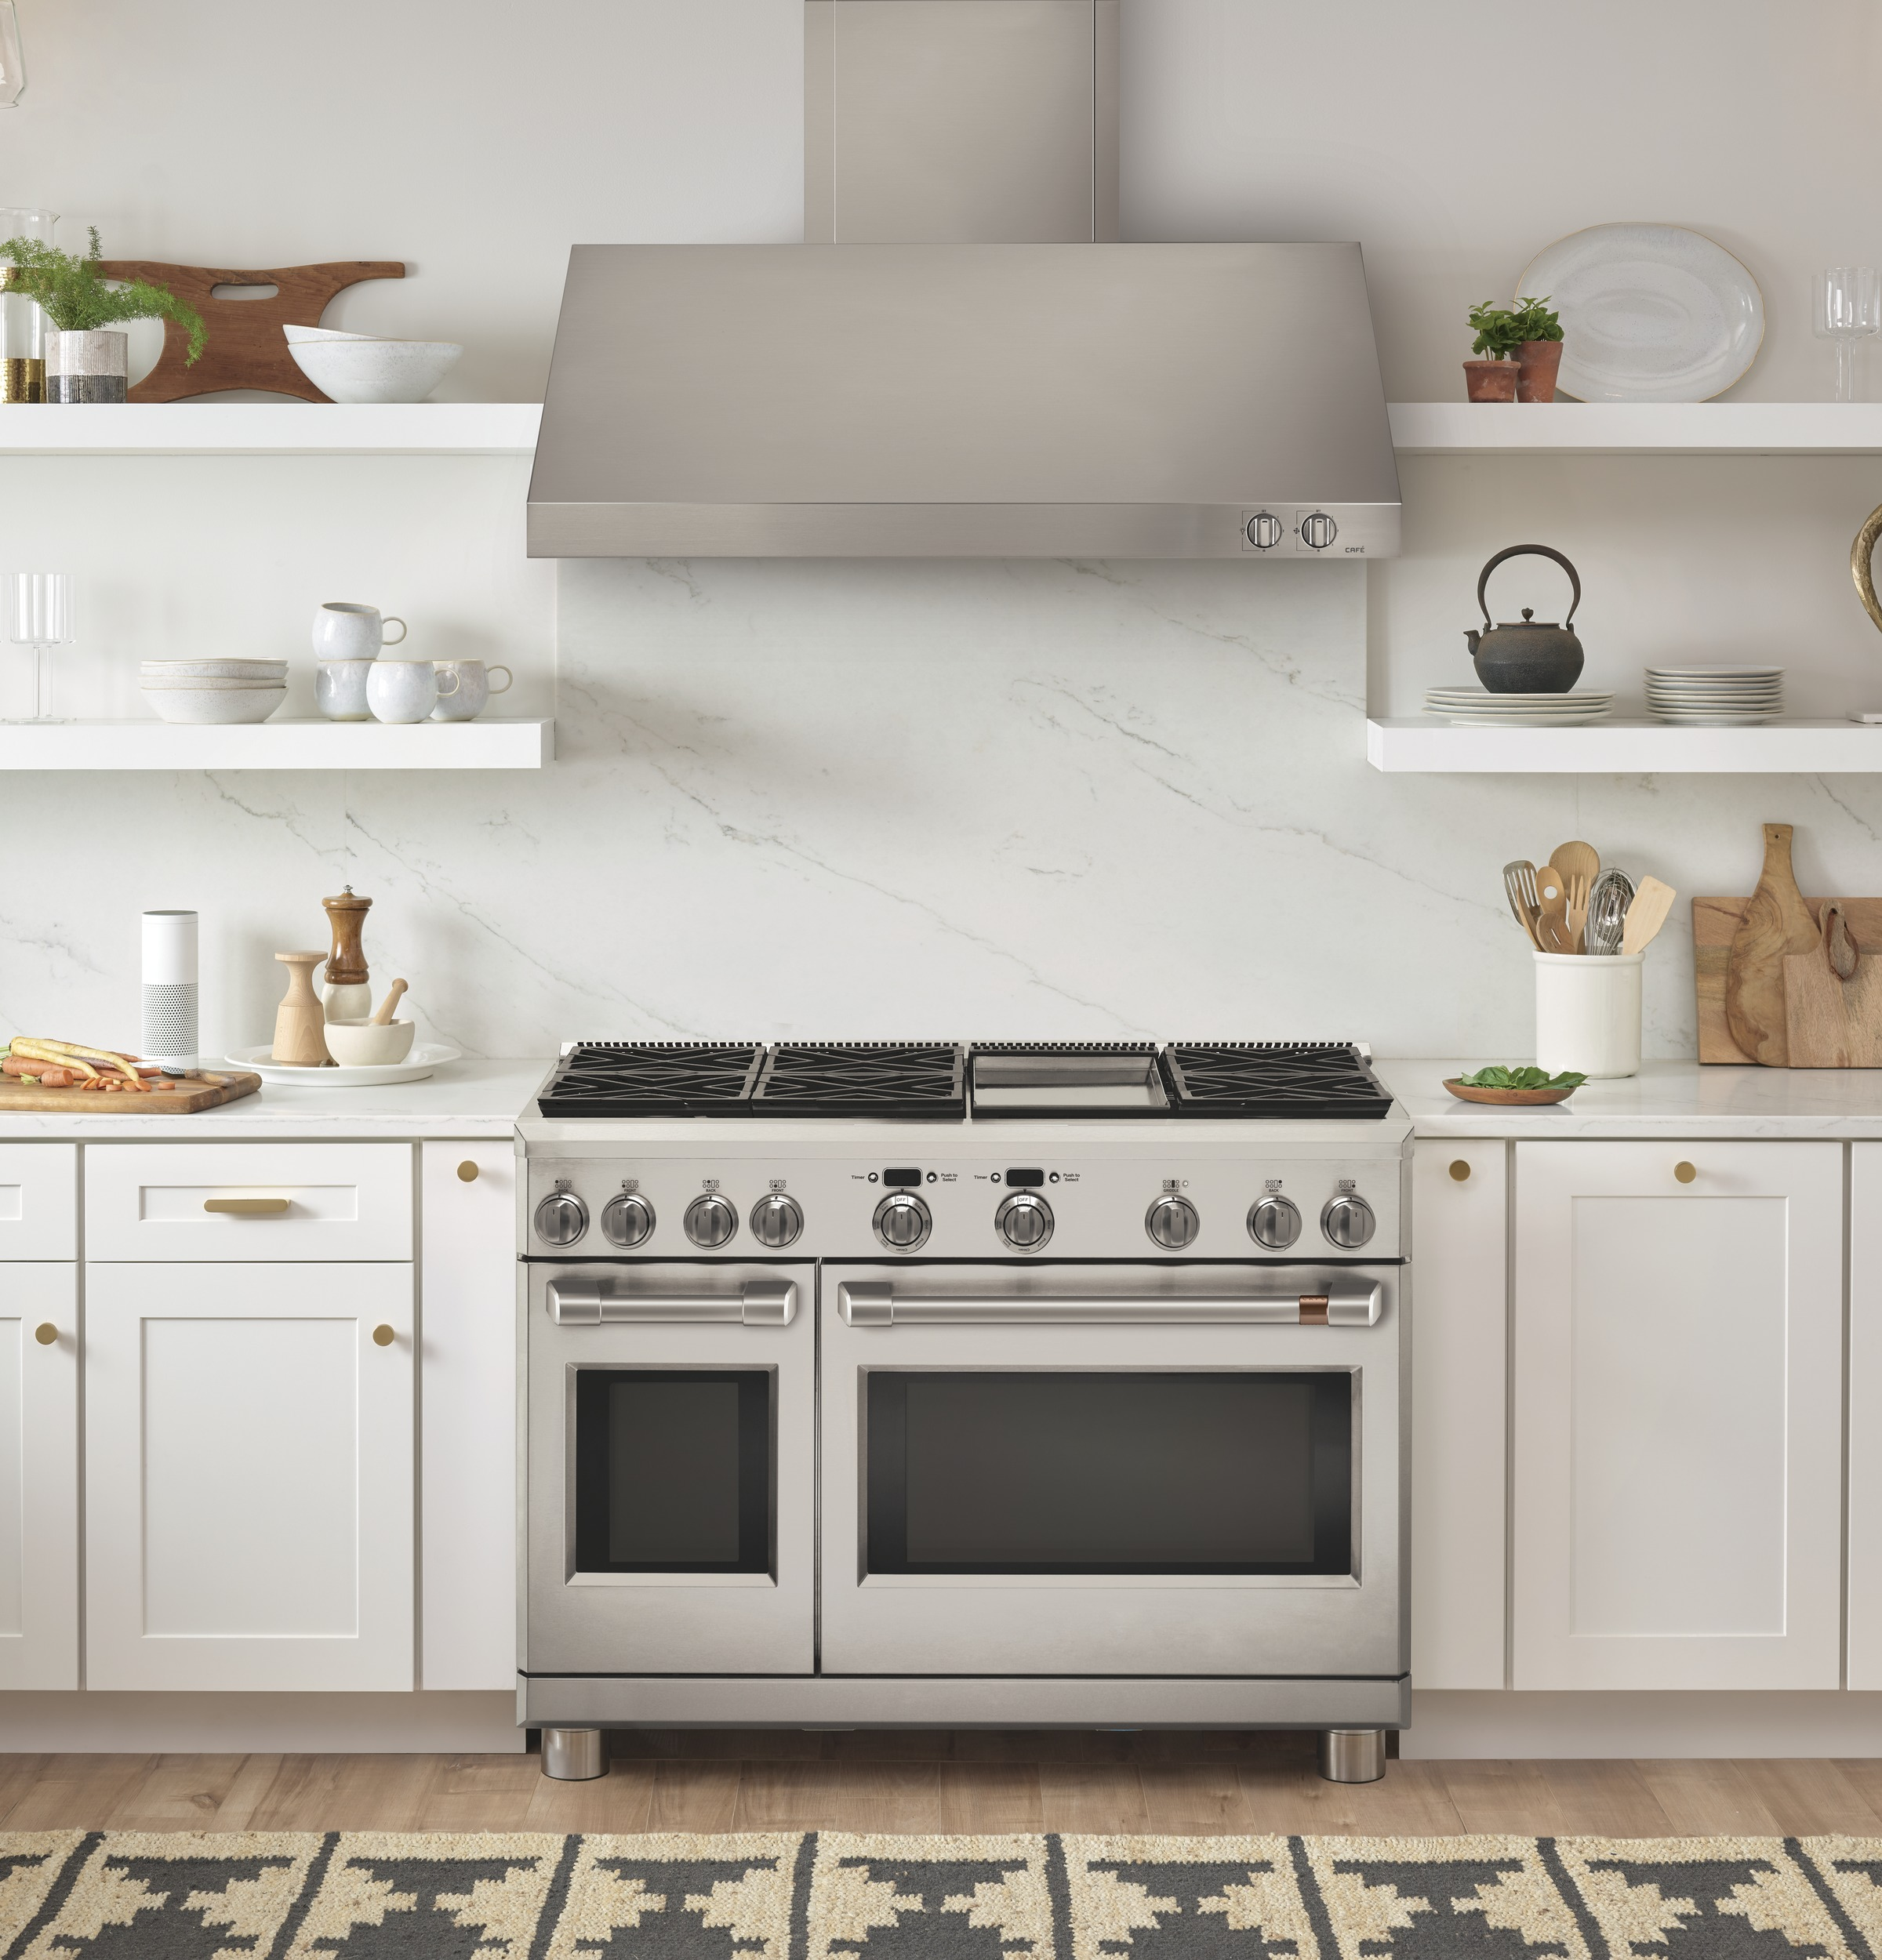 C2y486p2ms1 Overview Cafe 48 Dual Fuel Professional Range With 6 Burners And Griddle Natural Gas Cafe Appliances